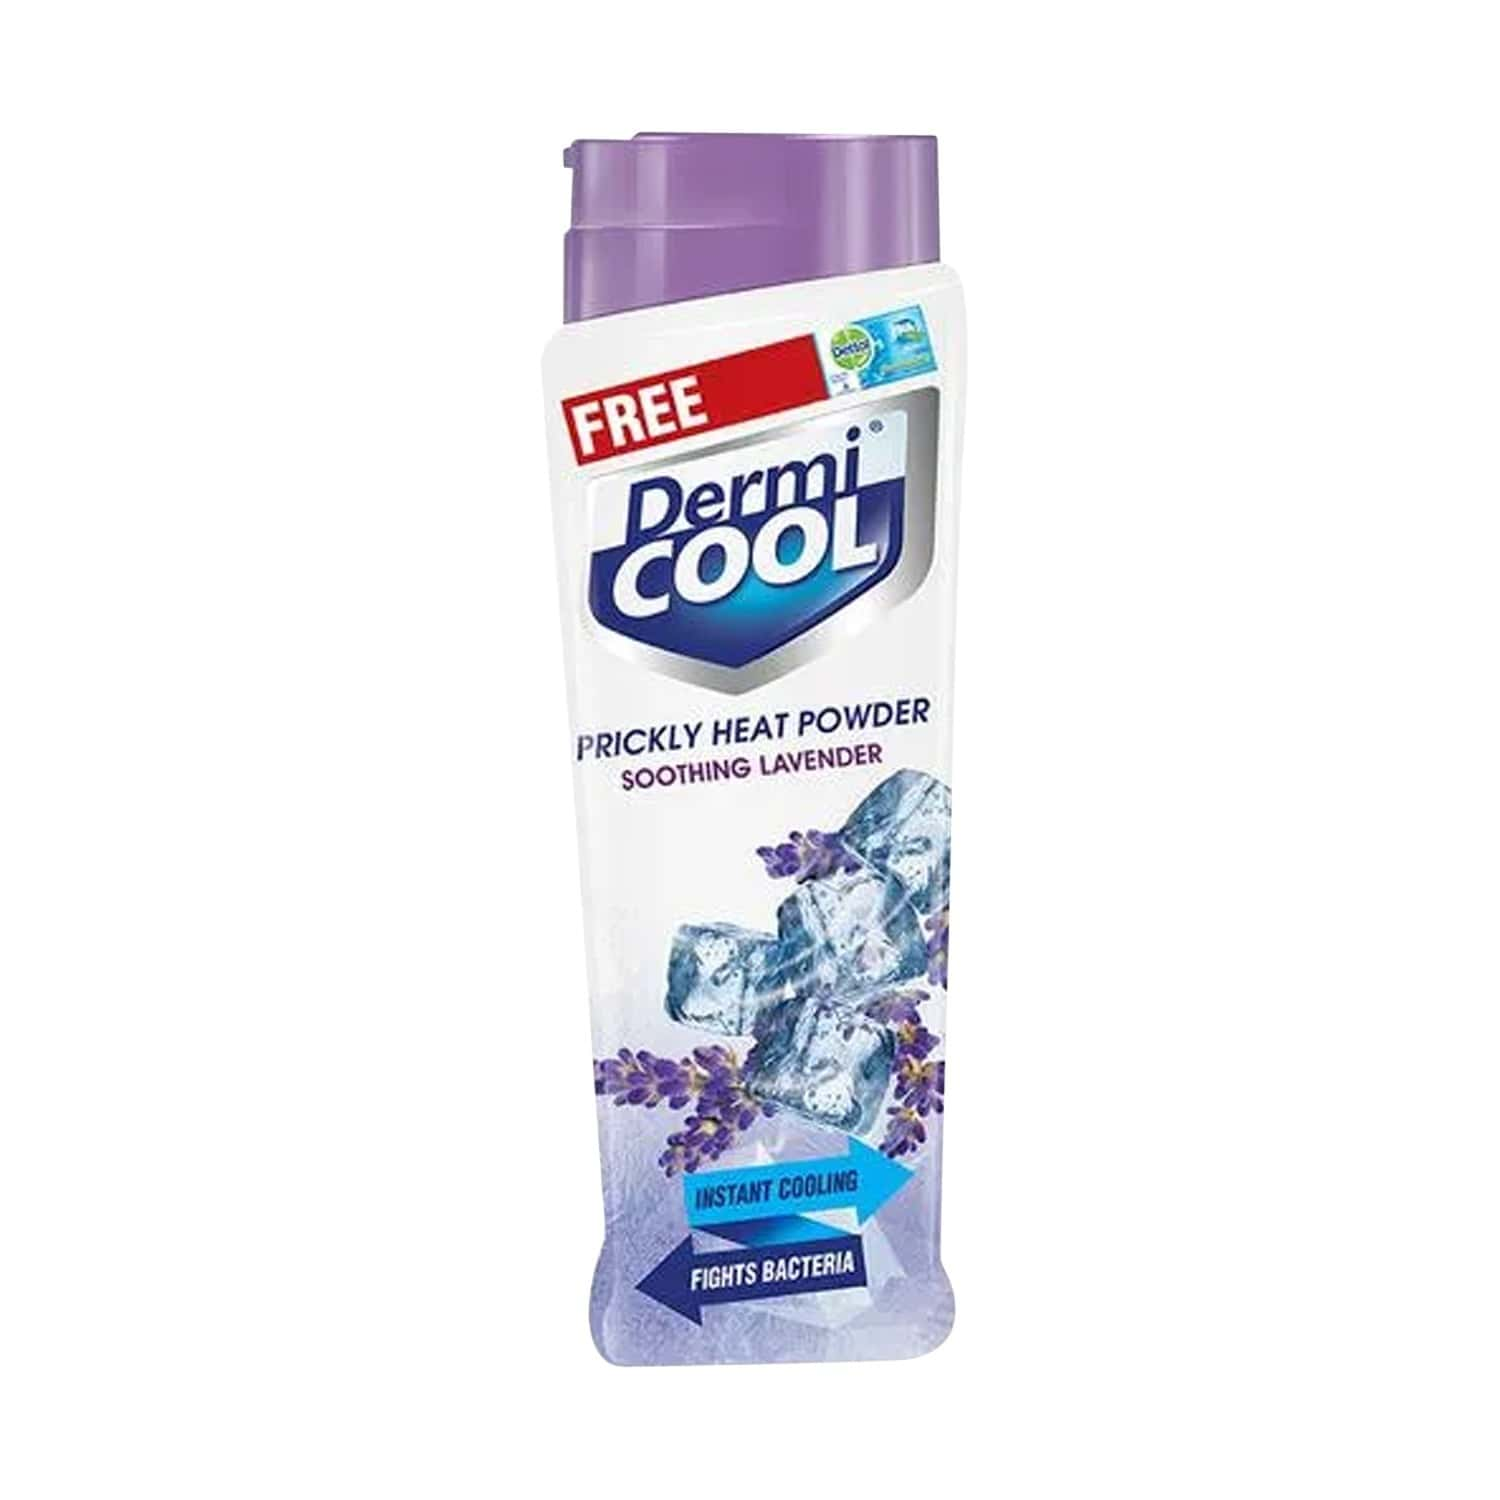 Dermicool Prickly Heat Lavender Powder 150 Gm With Dettol Cool Soap 75 Gm